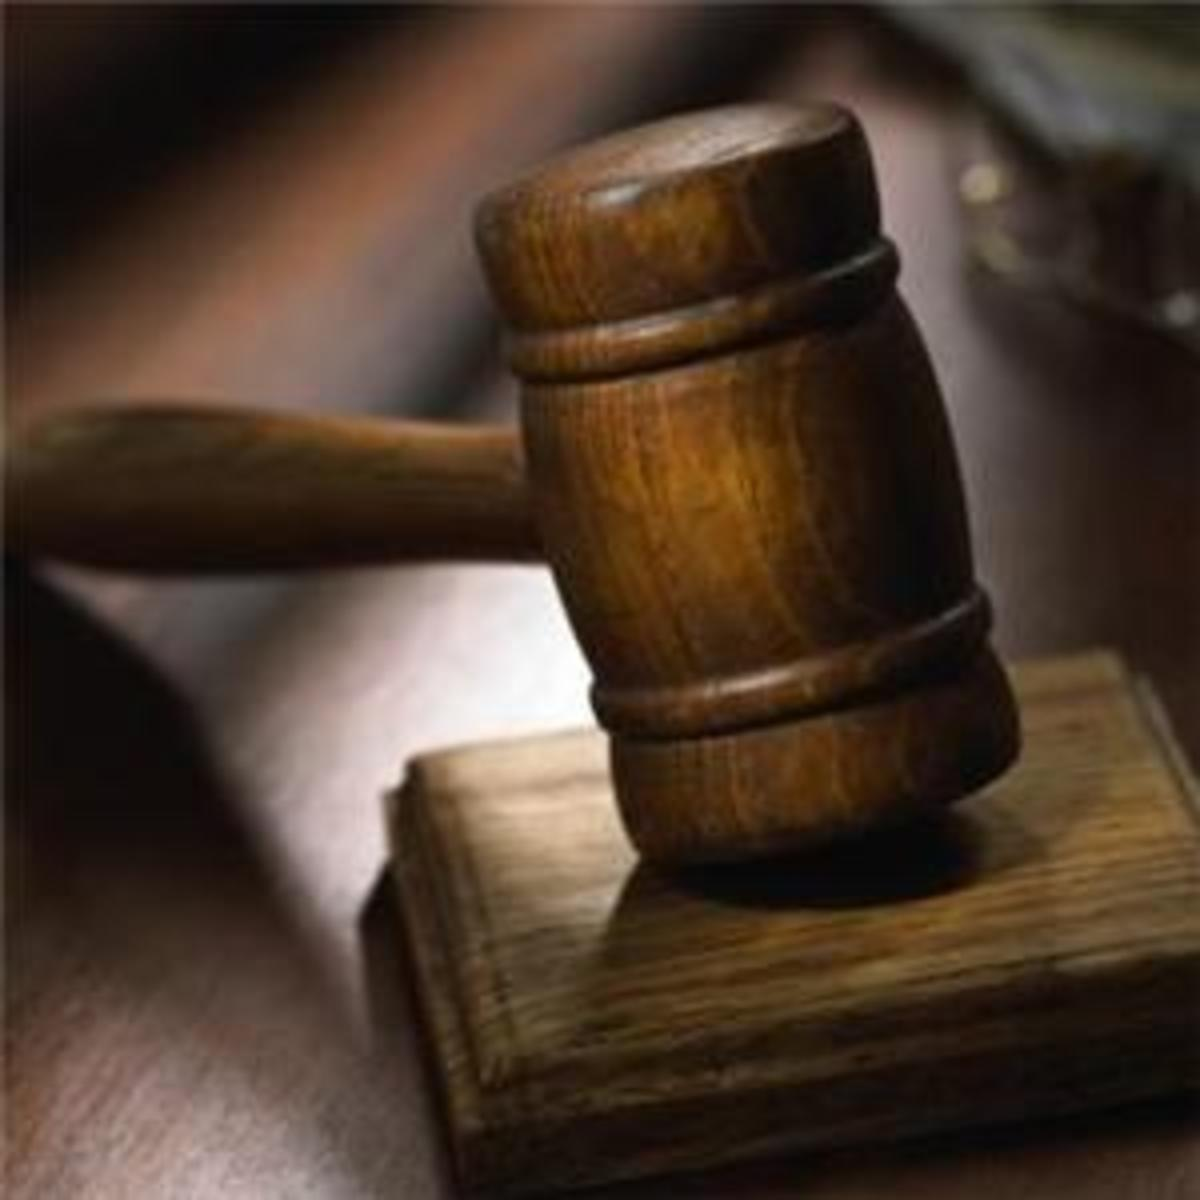 do-we-live-under-maritime-law